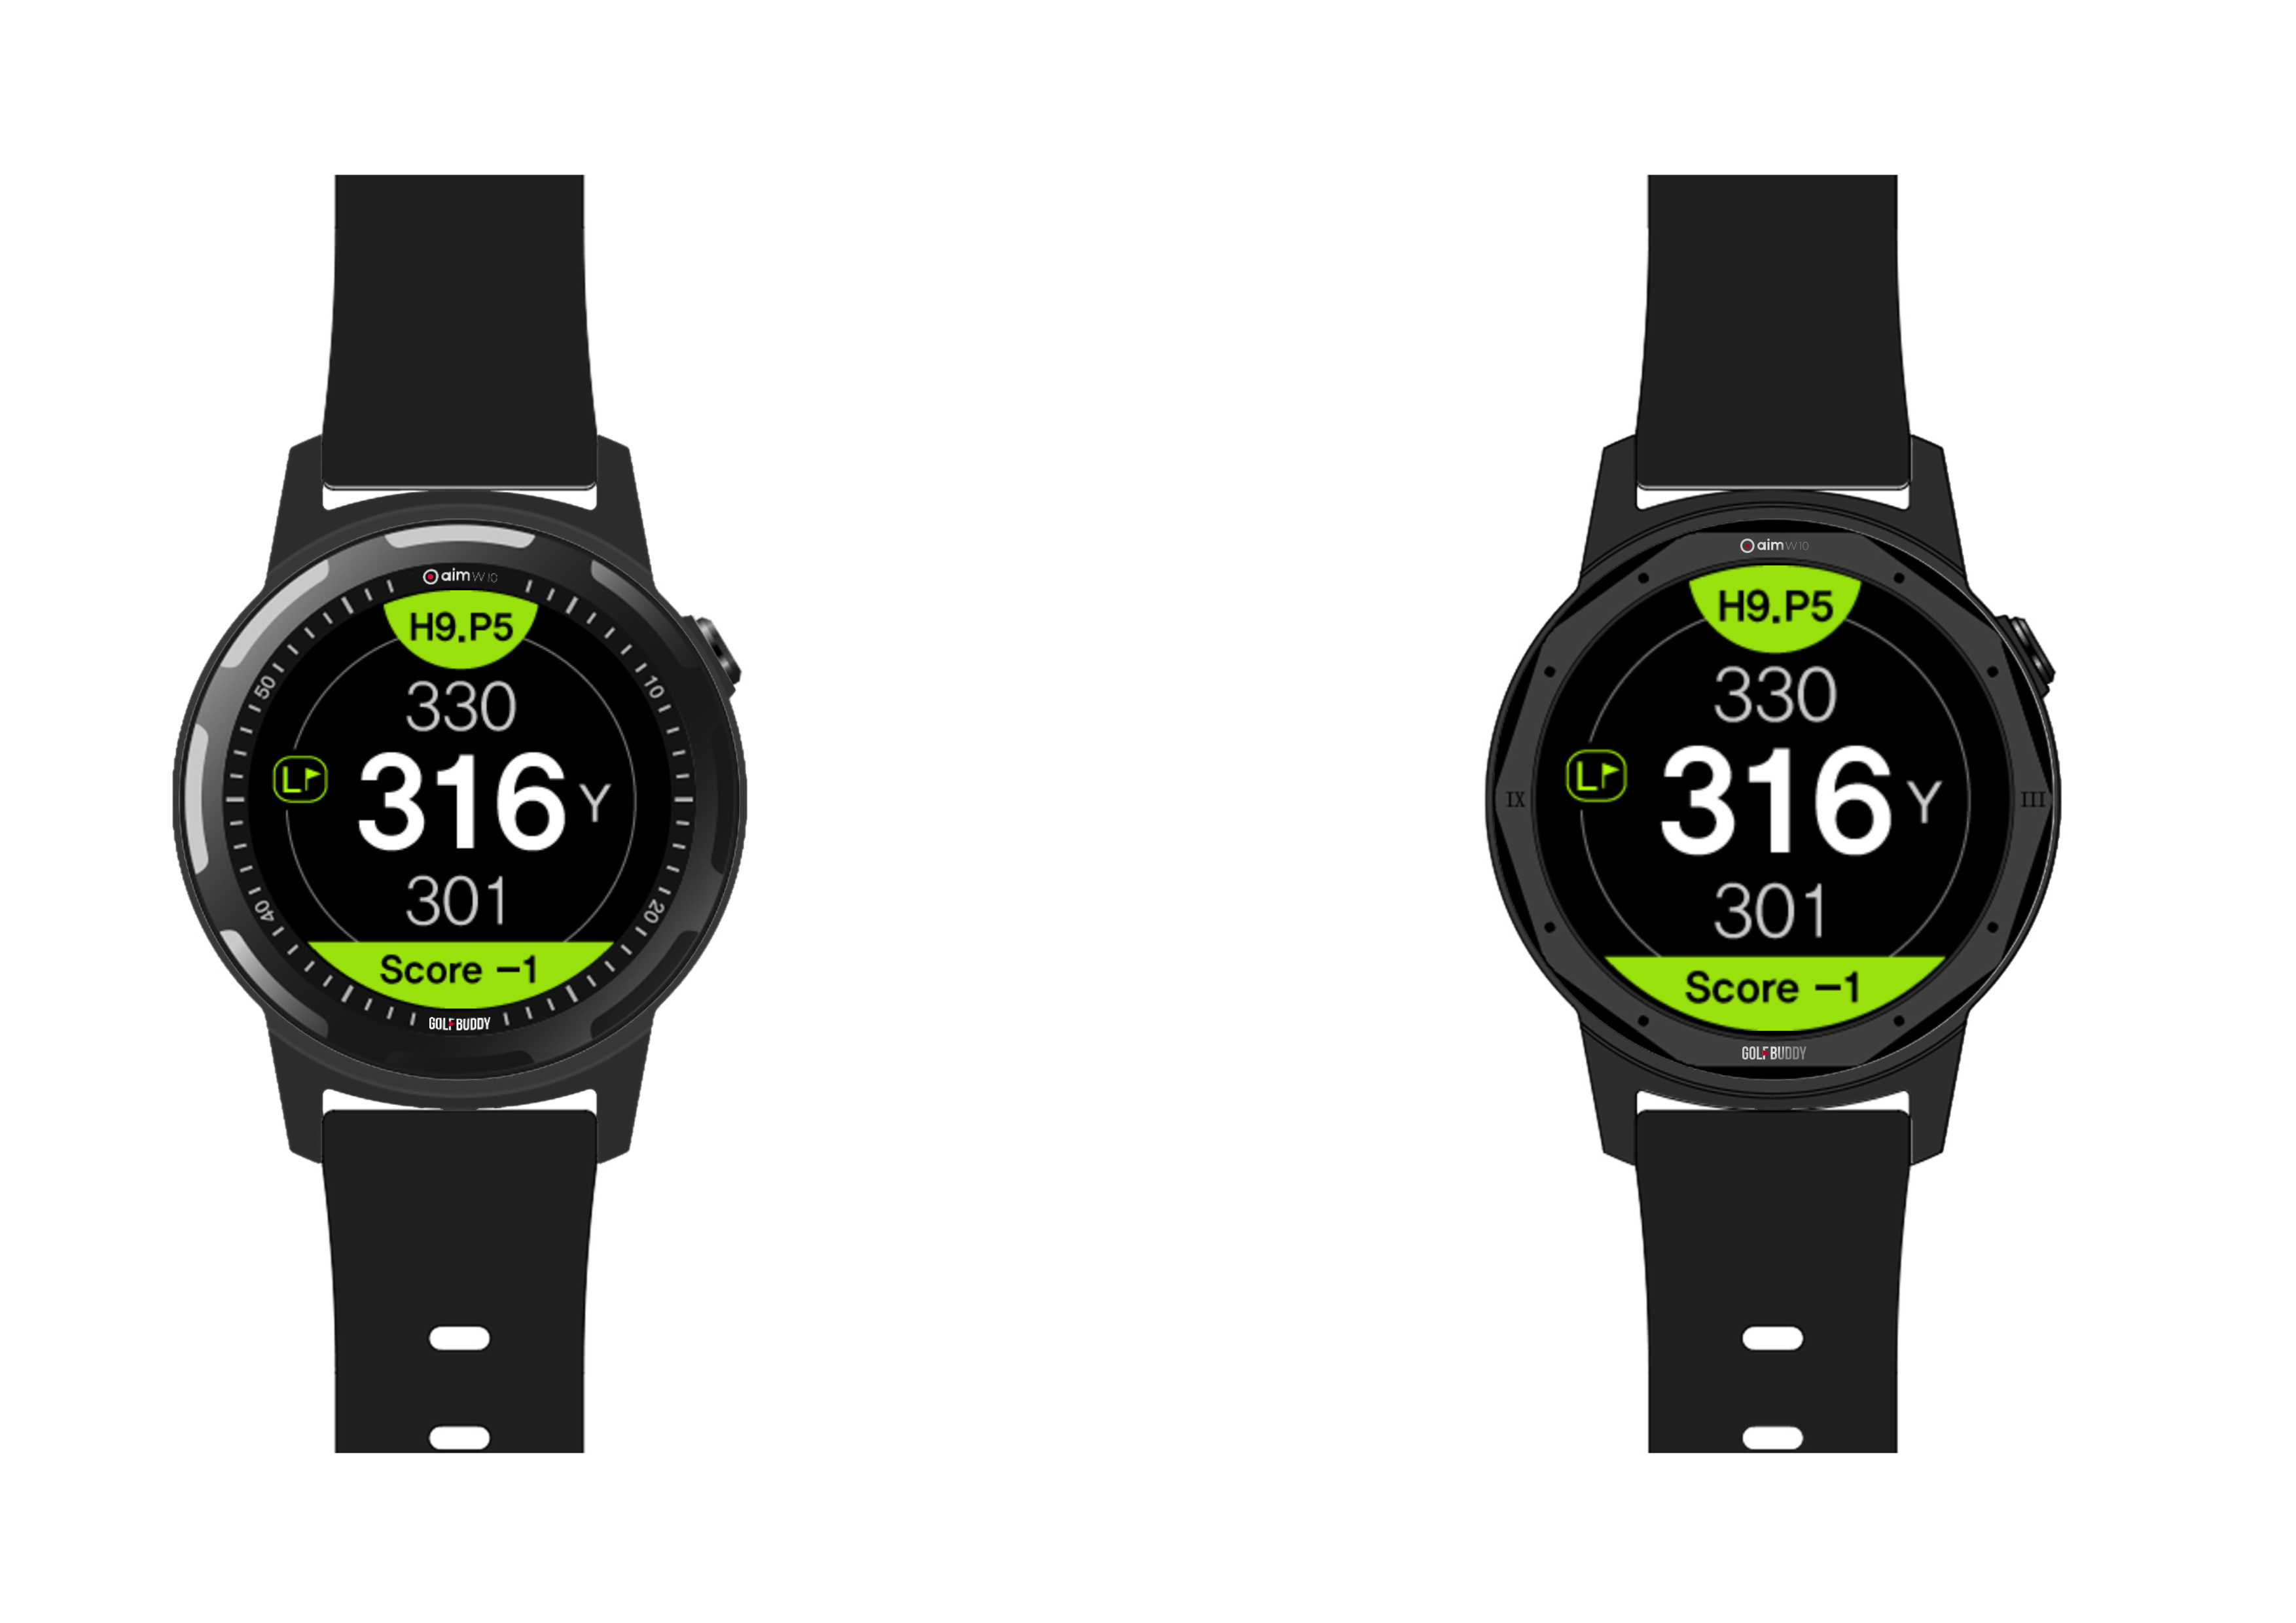 GolfBuddy launches next generation GPS devices